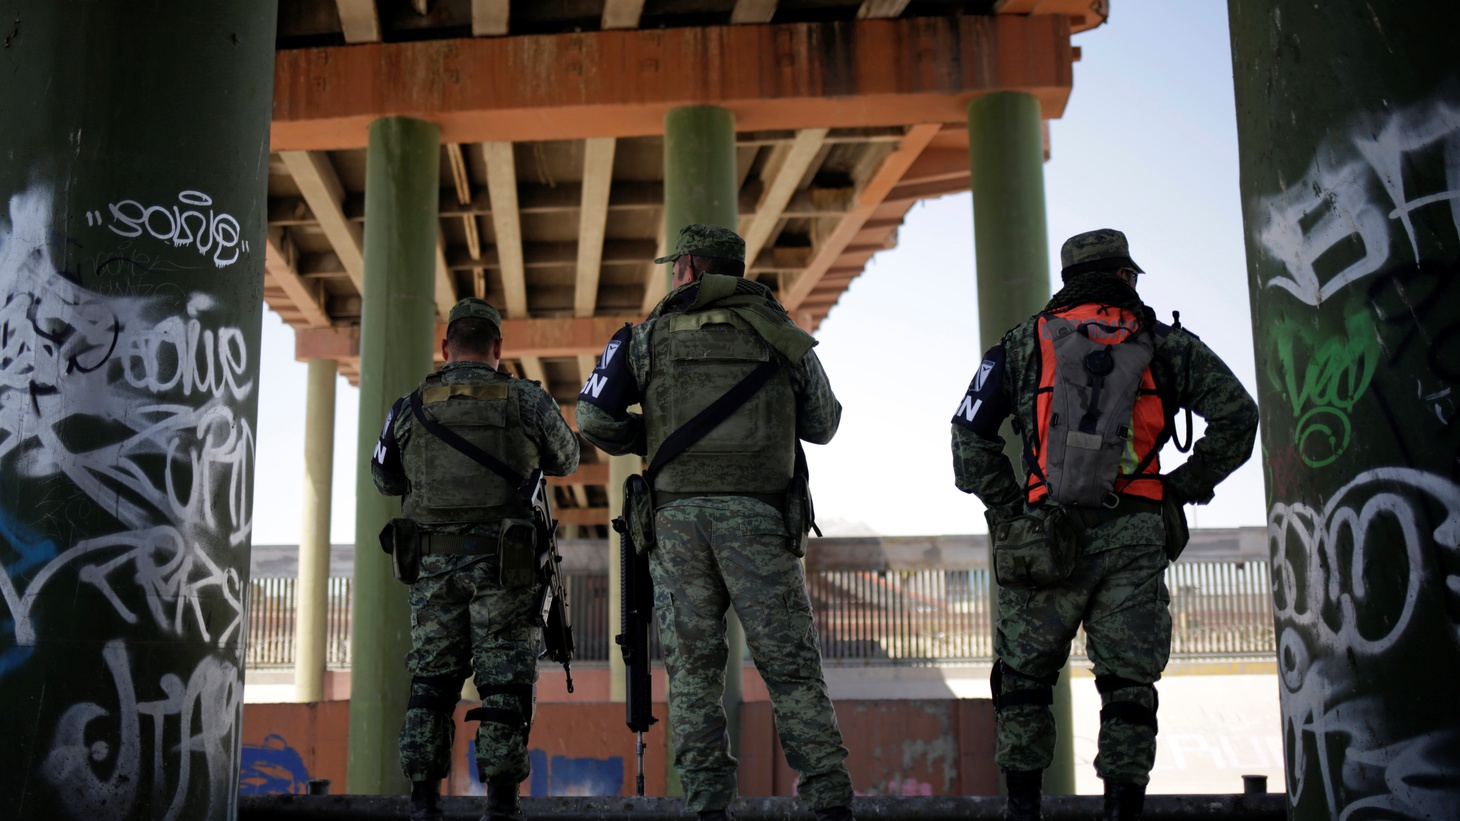 Members of Mexico's National Guard stand under the Paso del Norte International bridge that connects the U.S. and Mexico, as part of an ongoing operation to prevent migrants from crossing illegally into the United States, in Ciudad Juarez, Mexico June 24, 2019.